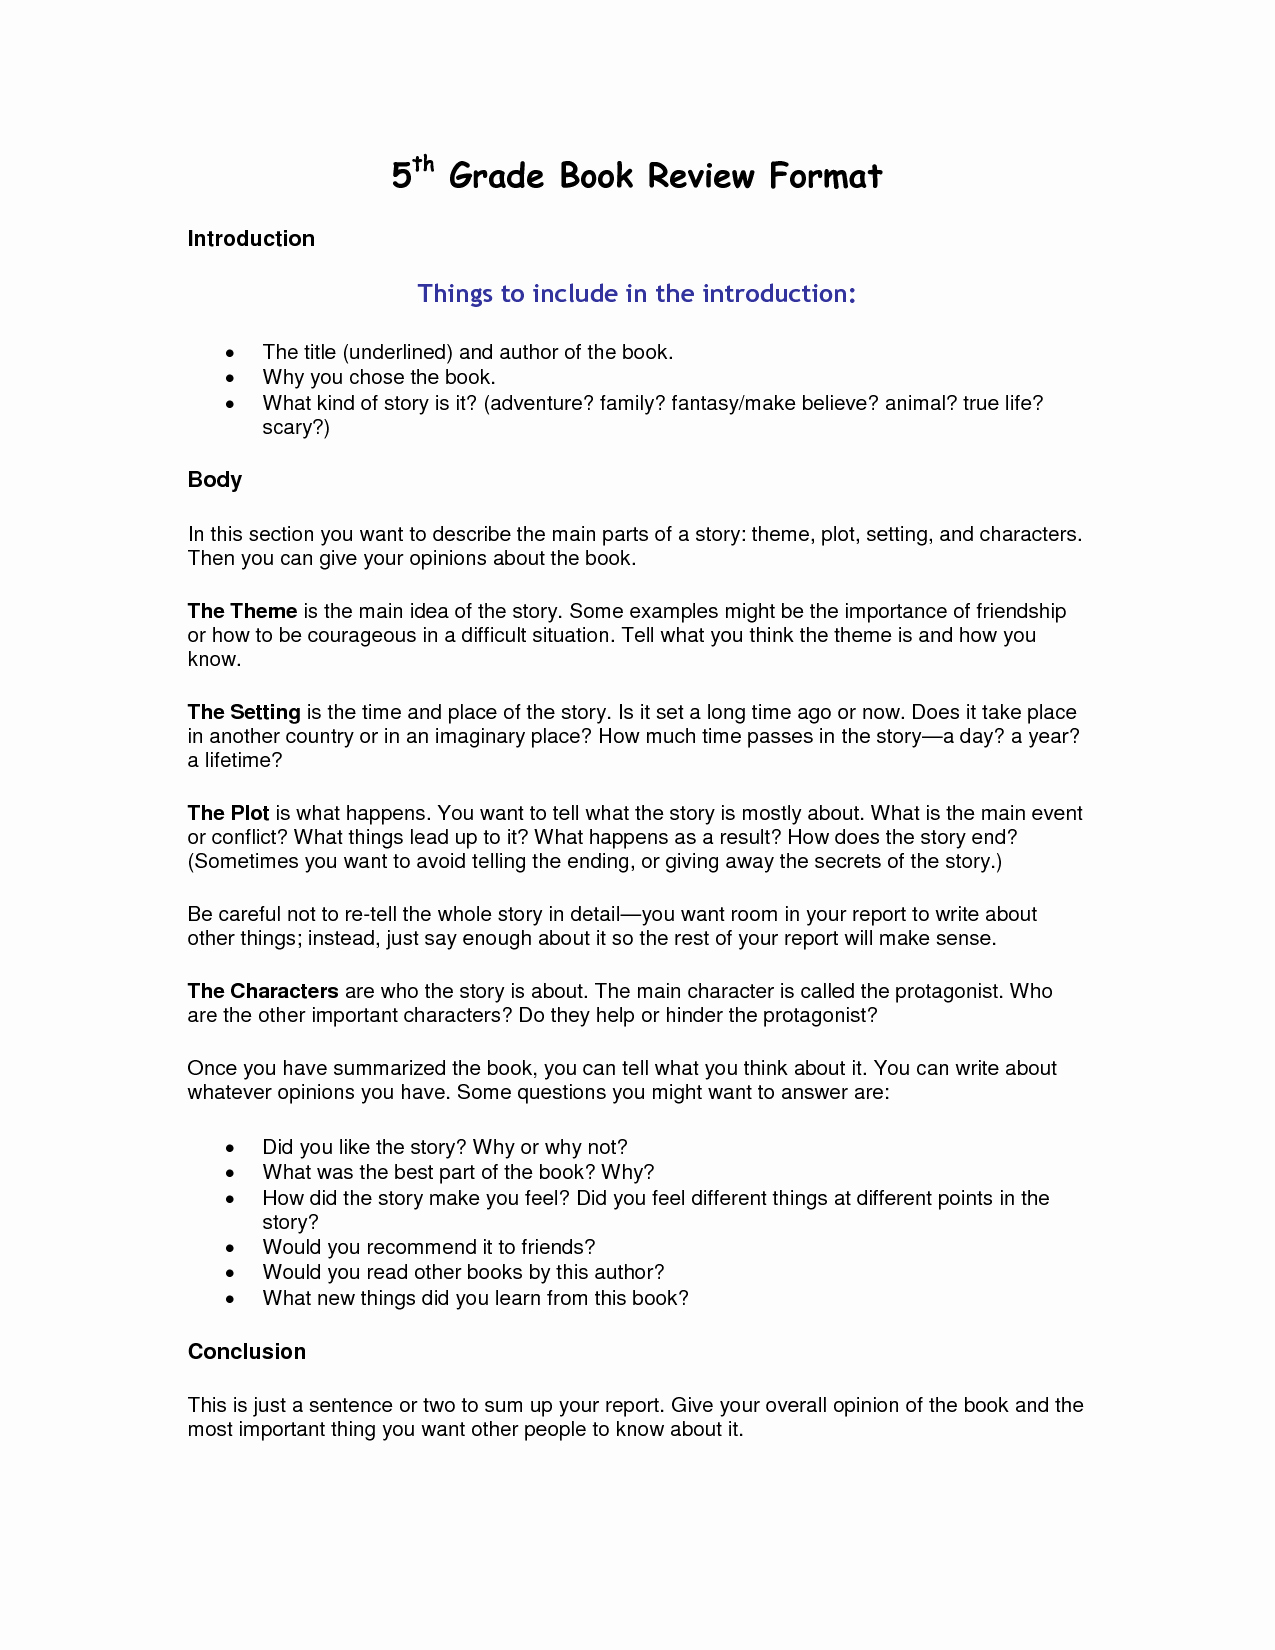 Book Report Examples 5th Grade Fresh Best S Of Book Report Template 5th Grade 5th Grade Book Report Template 6th Grade Book